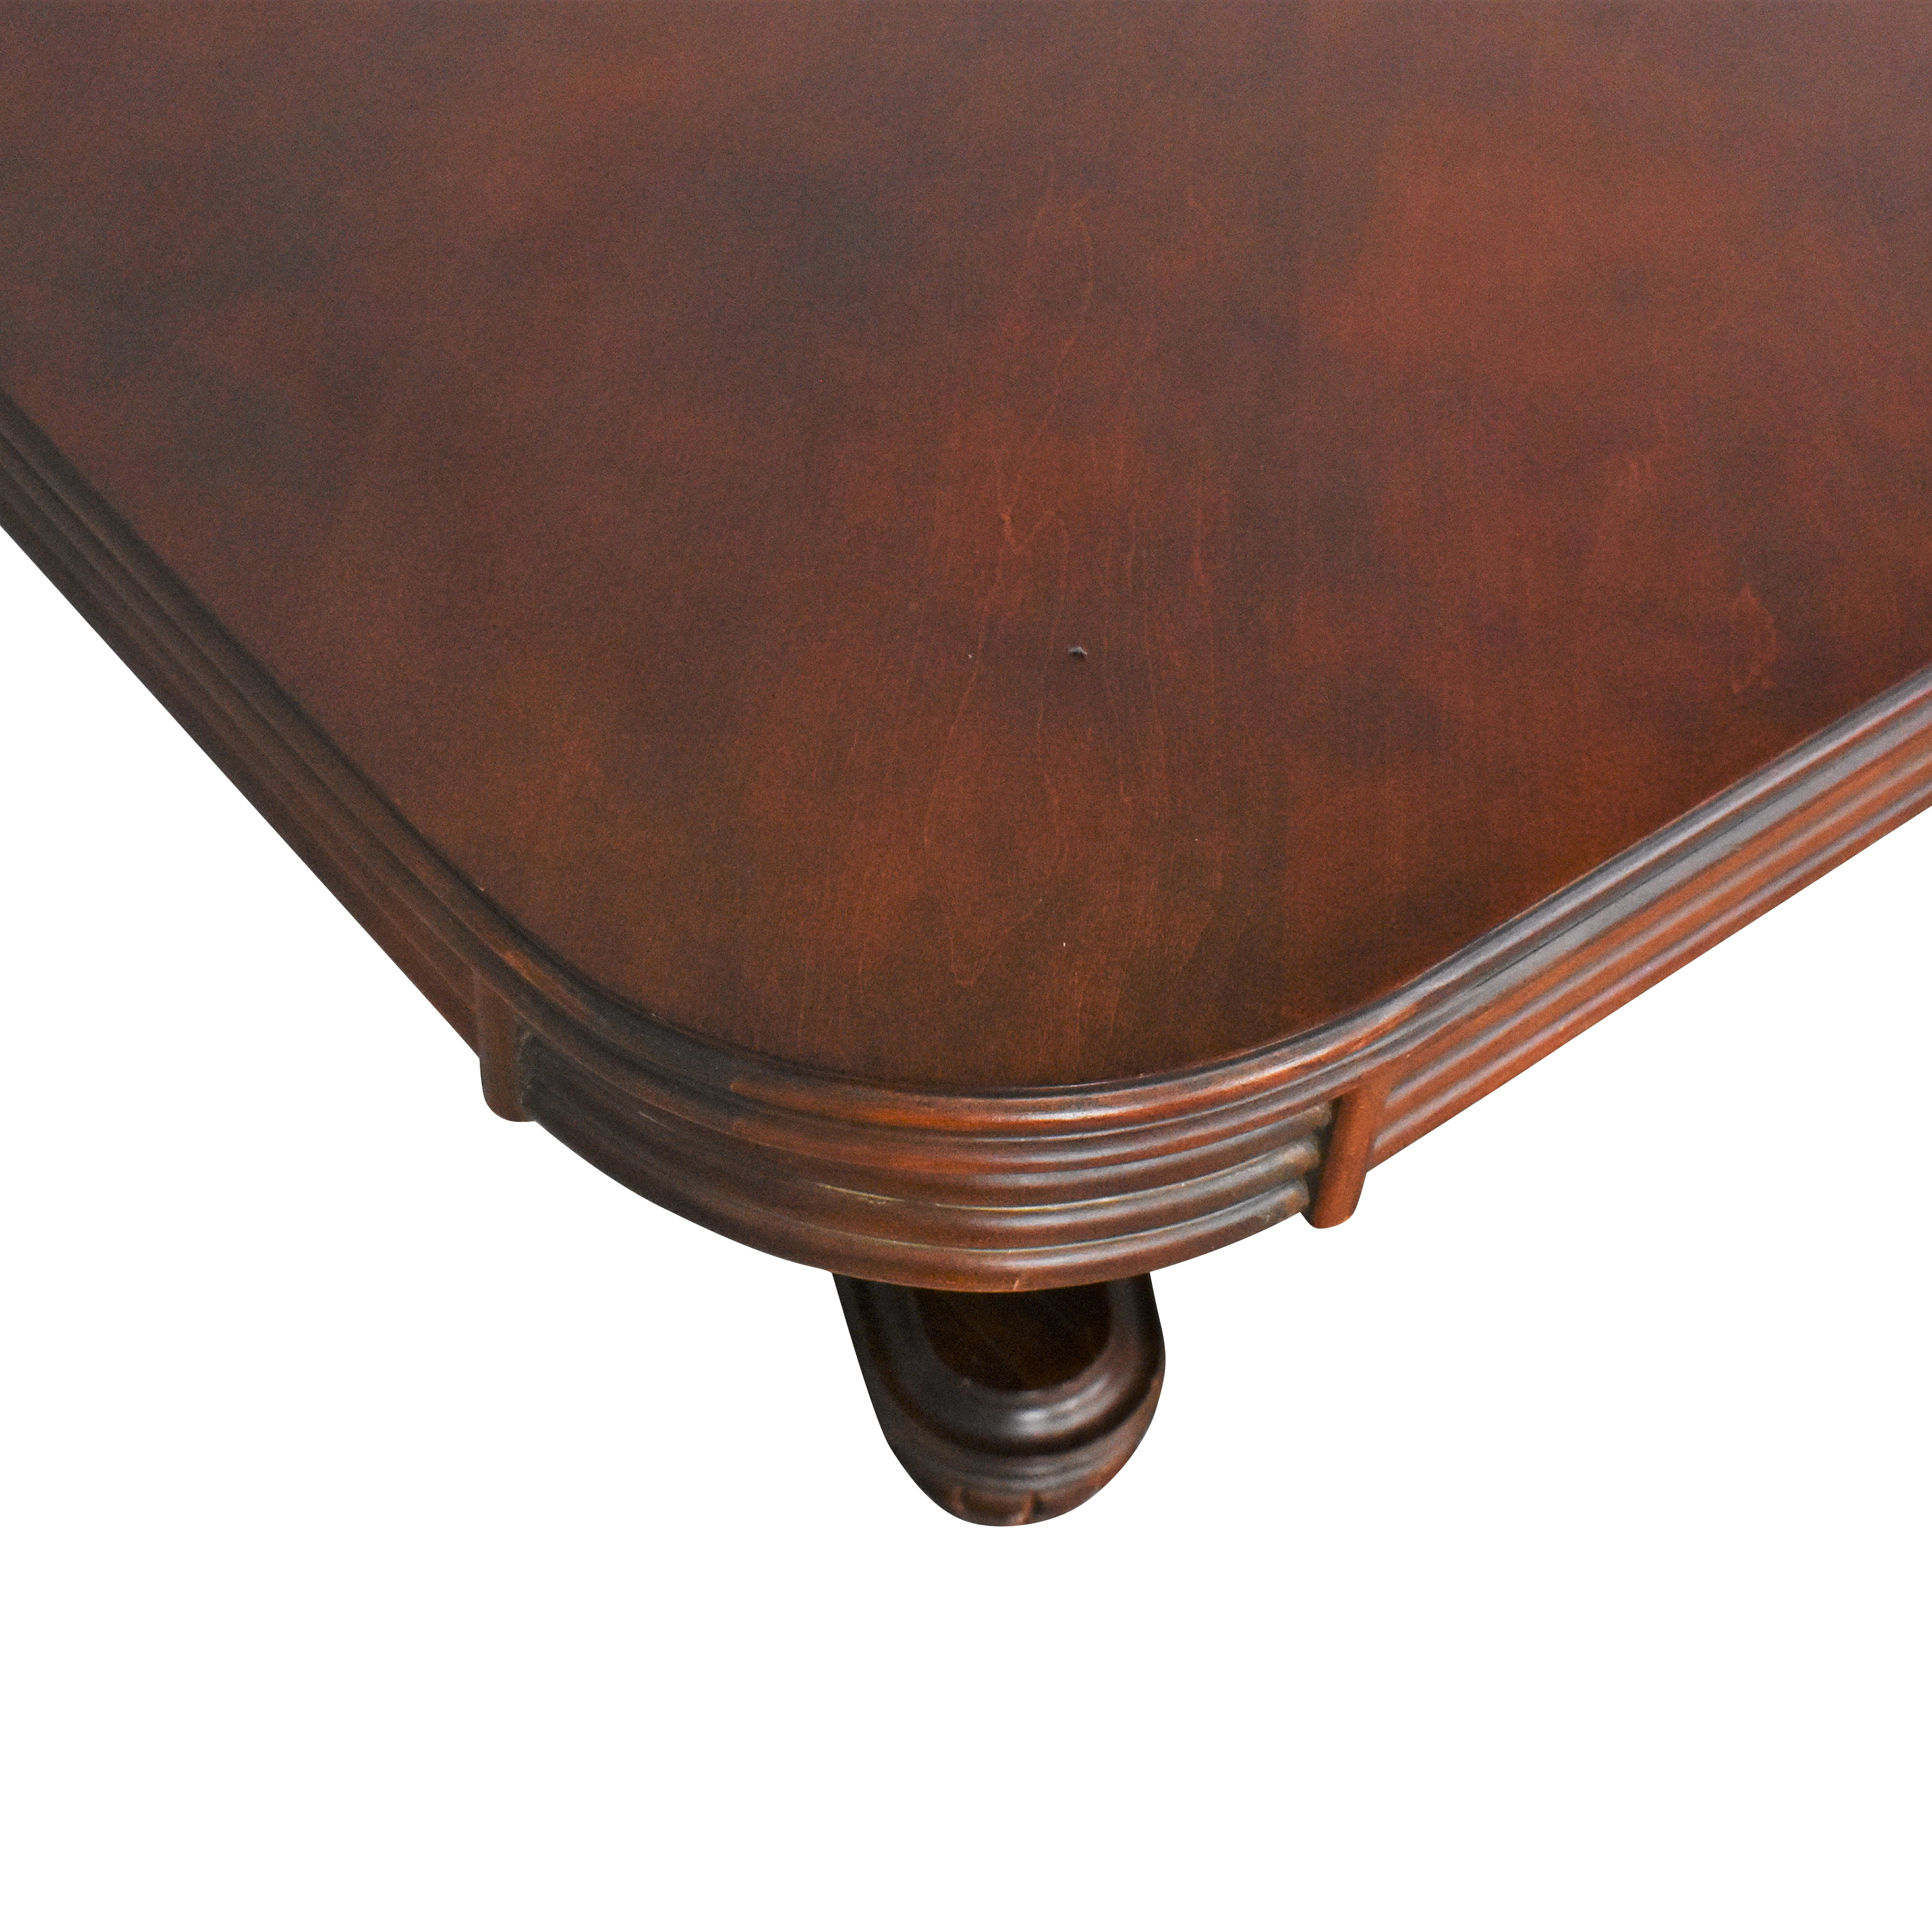 Broyhill Furniture Broyhill Furniture Double Pedestal Extendable Dining Table coupon